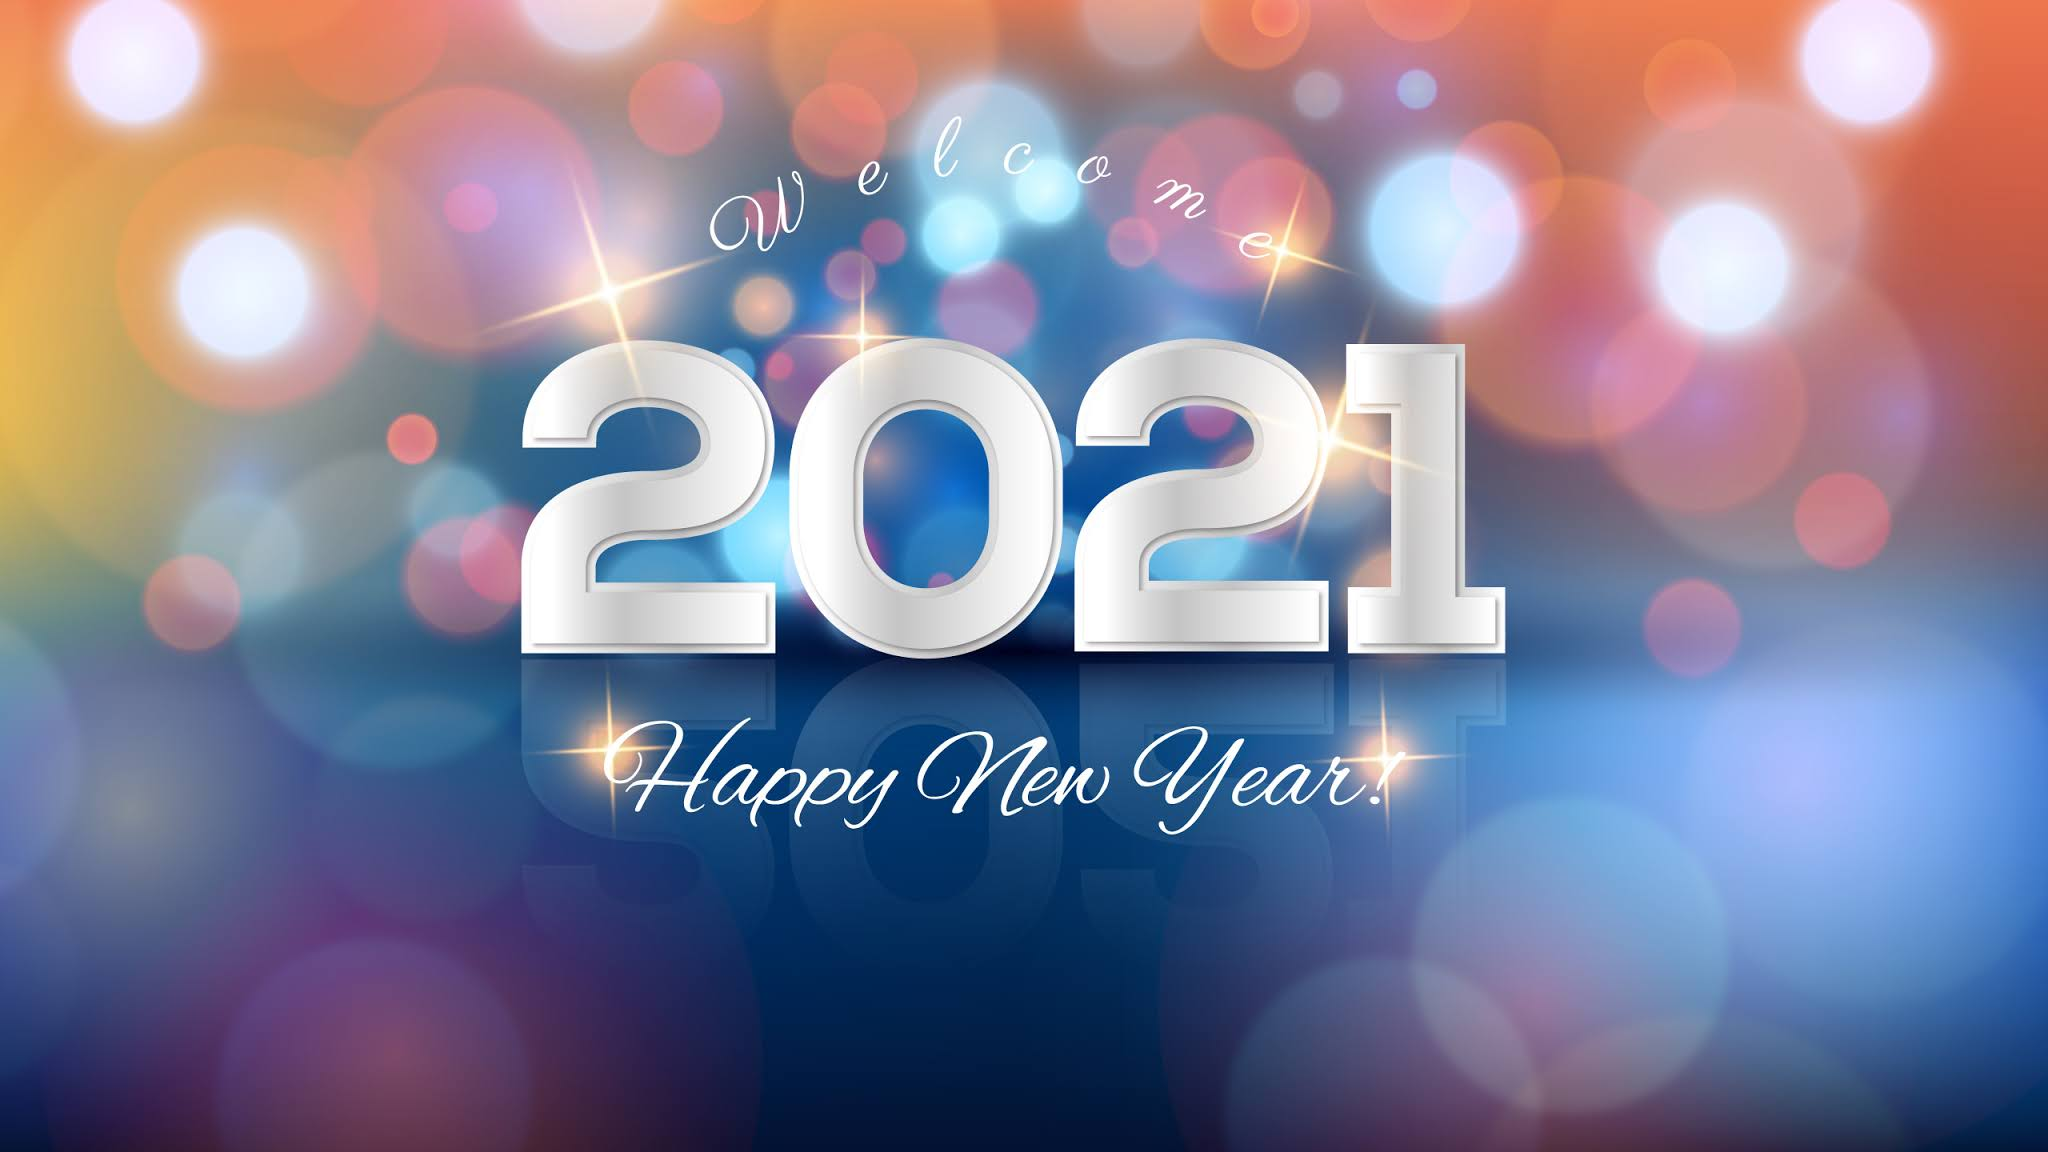 New Year 2021 Wallpapers Wallpaper Cave